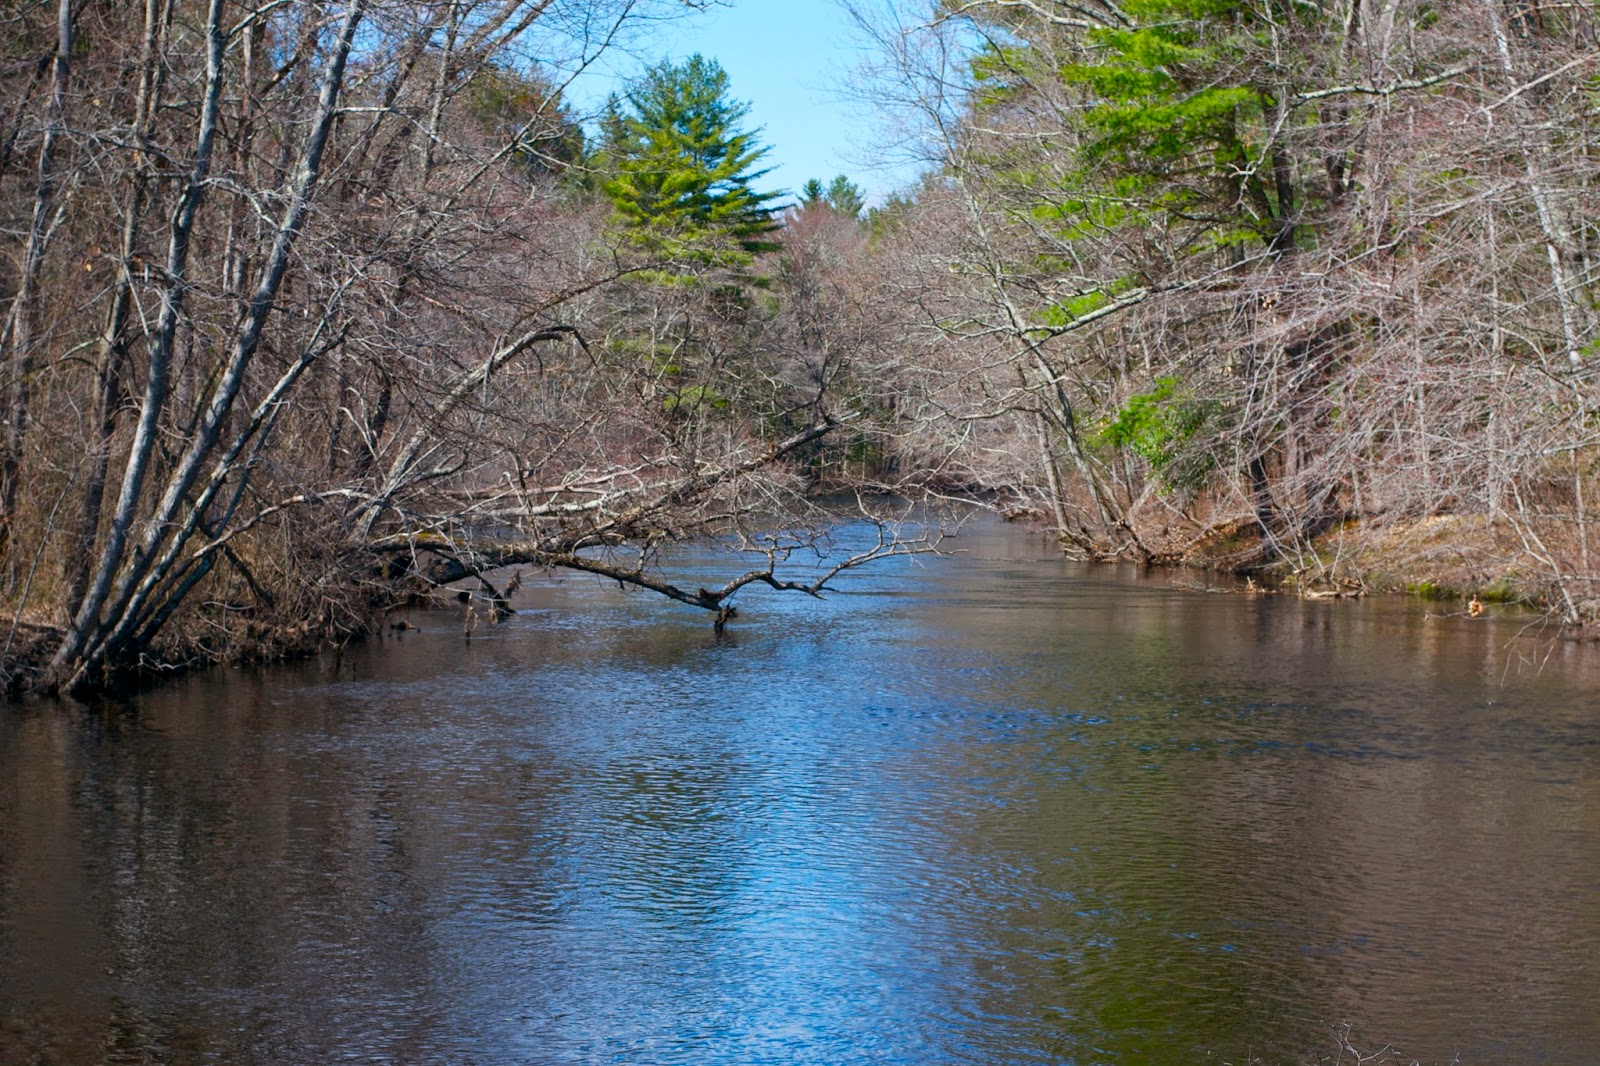 The Ipswich River.